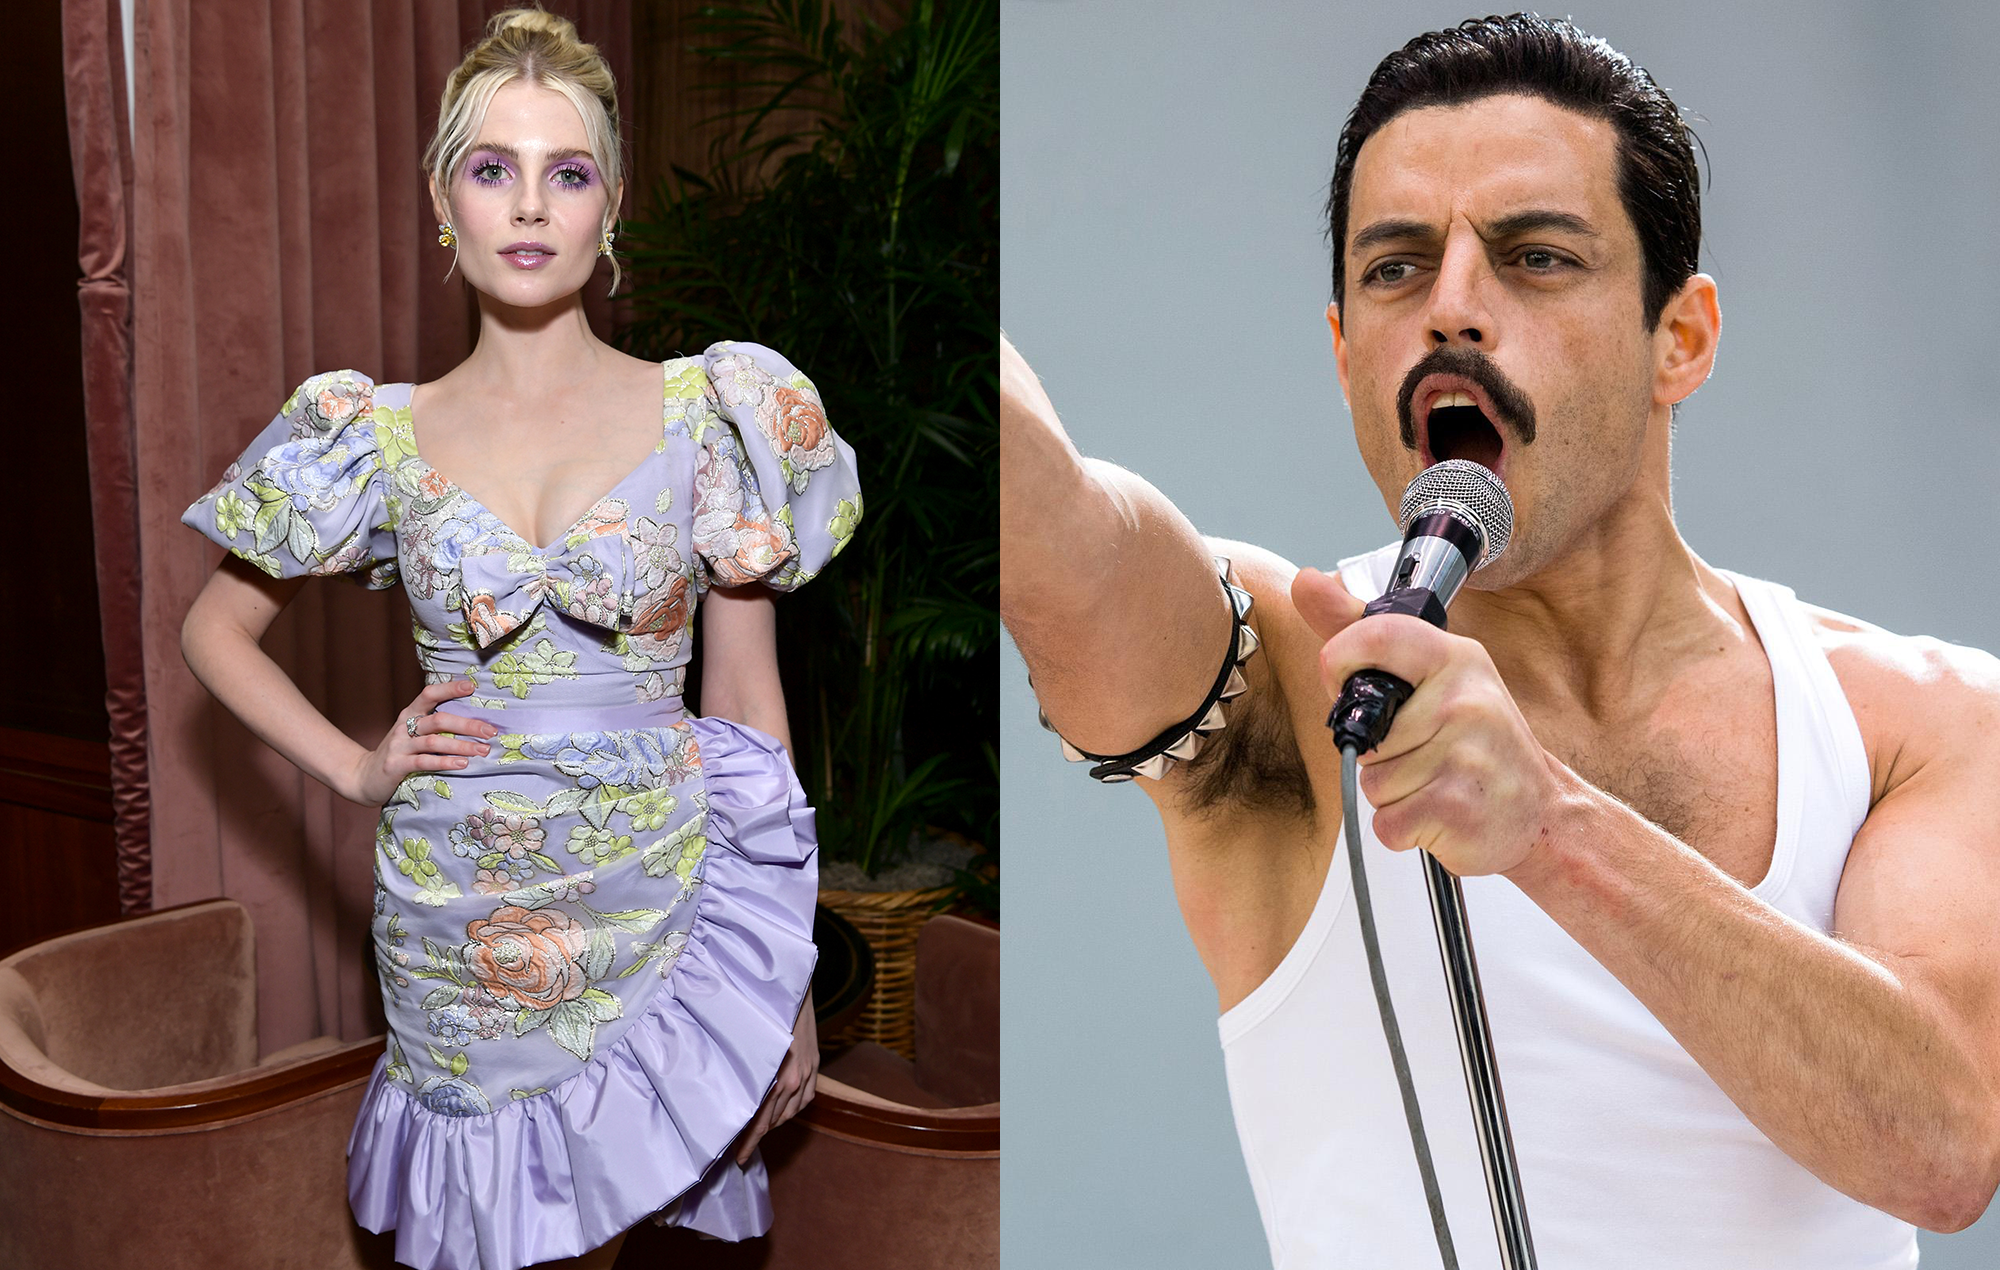 'Bohemian Rhapsody' star Lucy Boynton doesn't think there should be another film